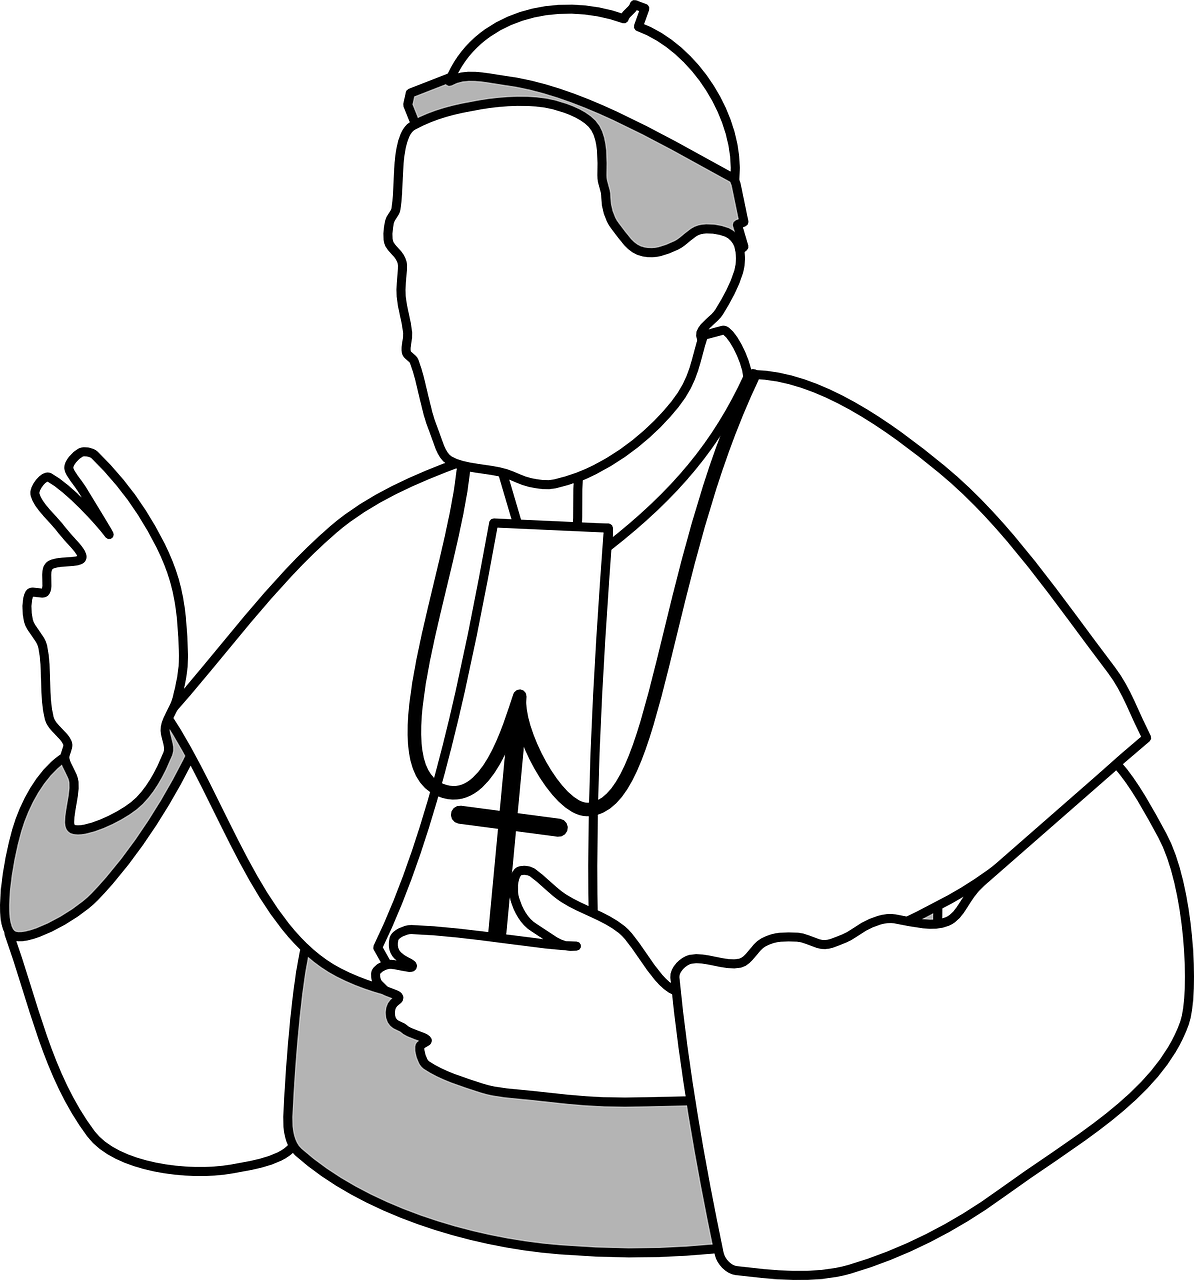 Catholic Church Leaders Lesson Plan For 3rd Grade